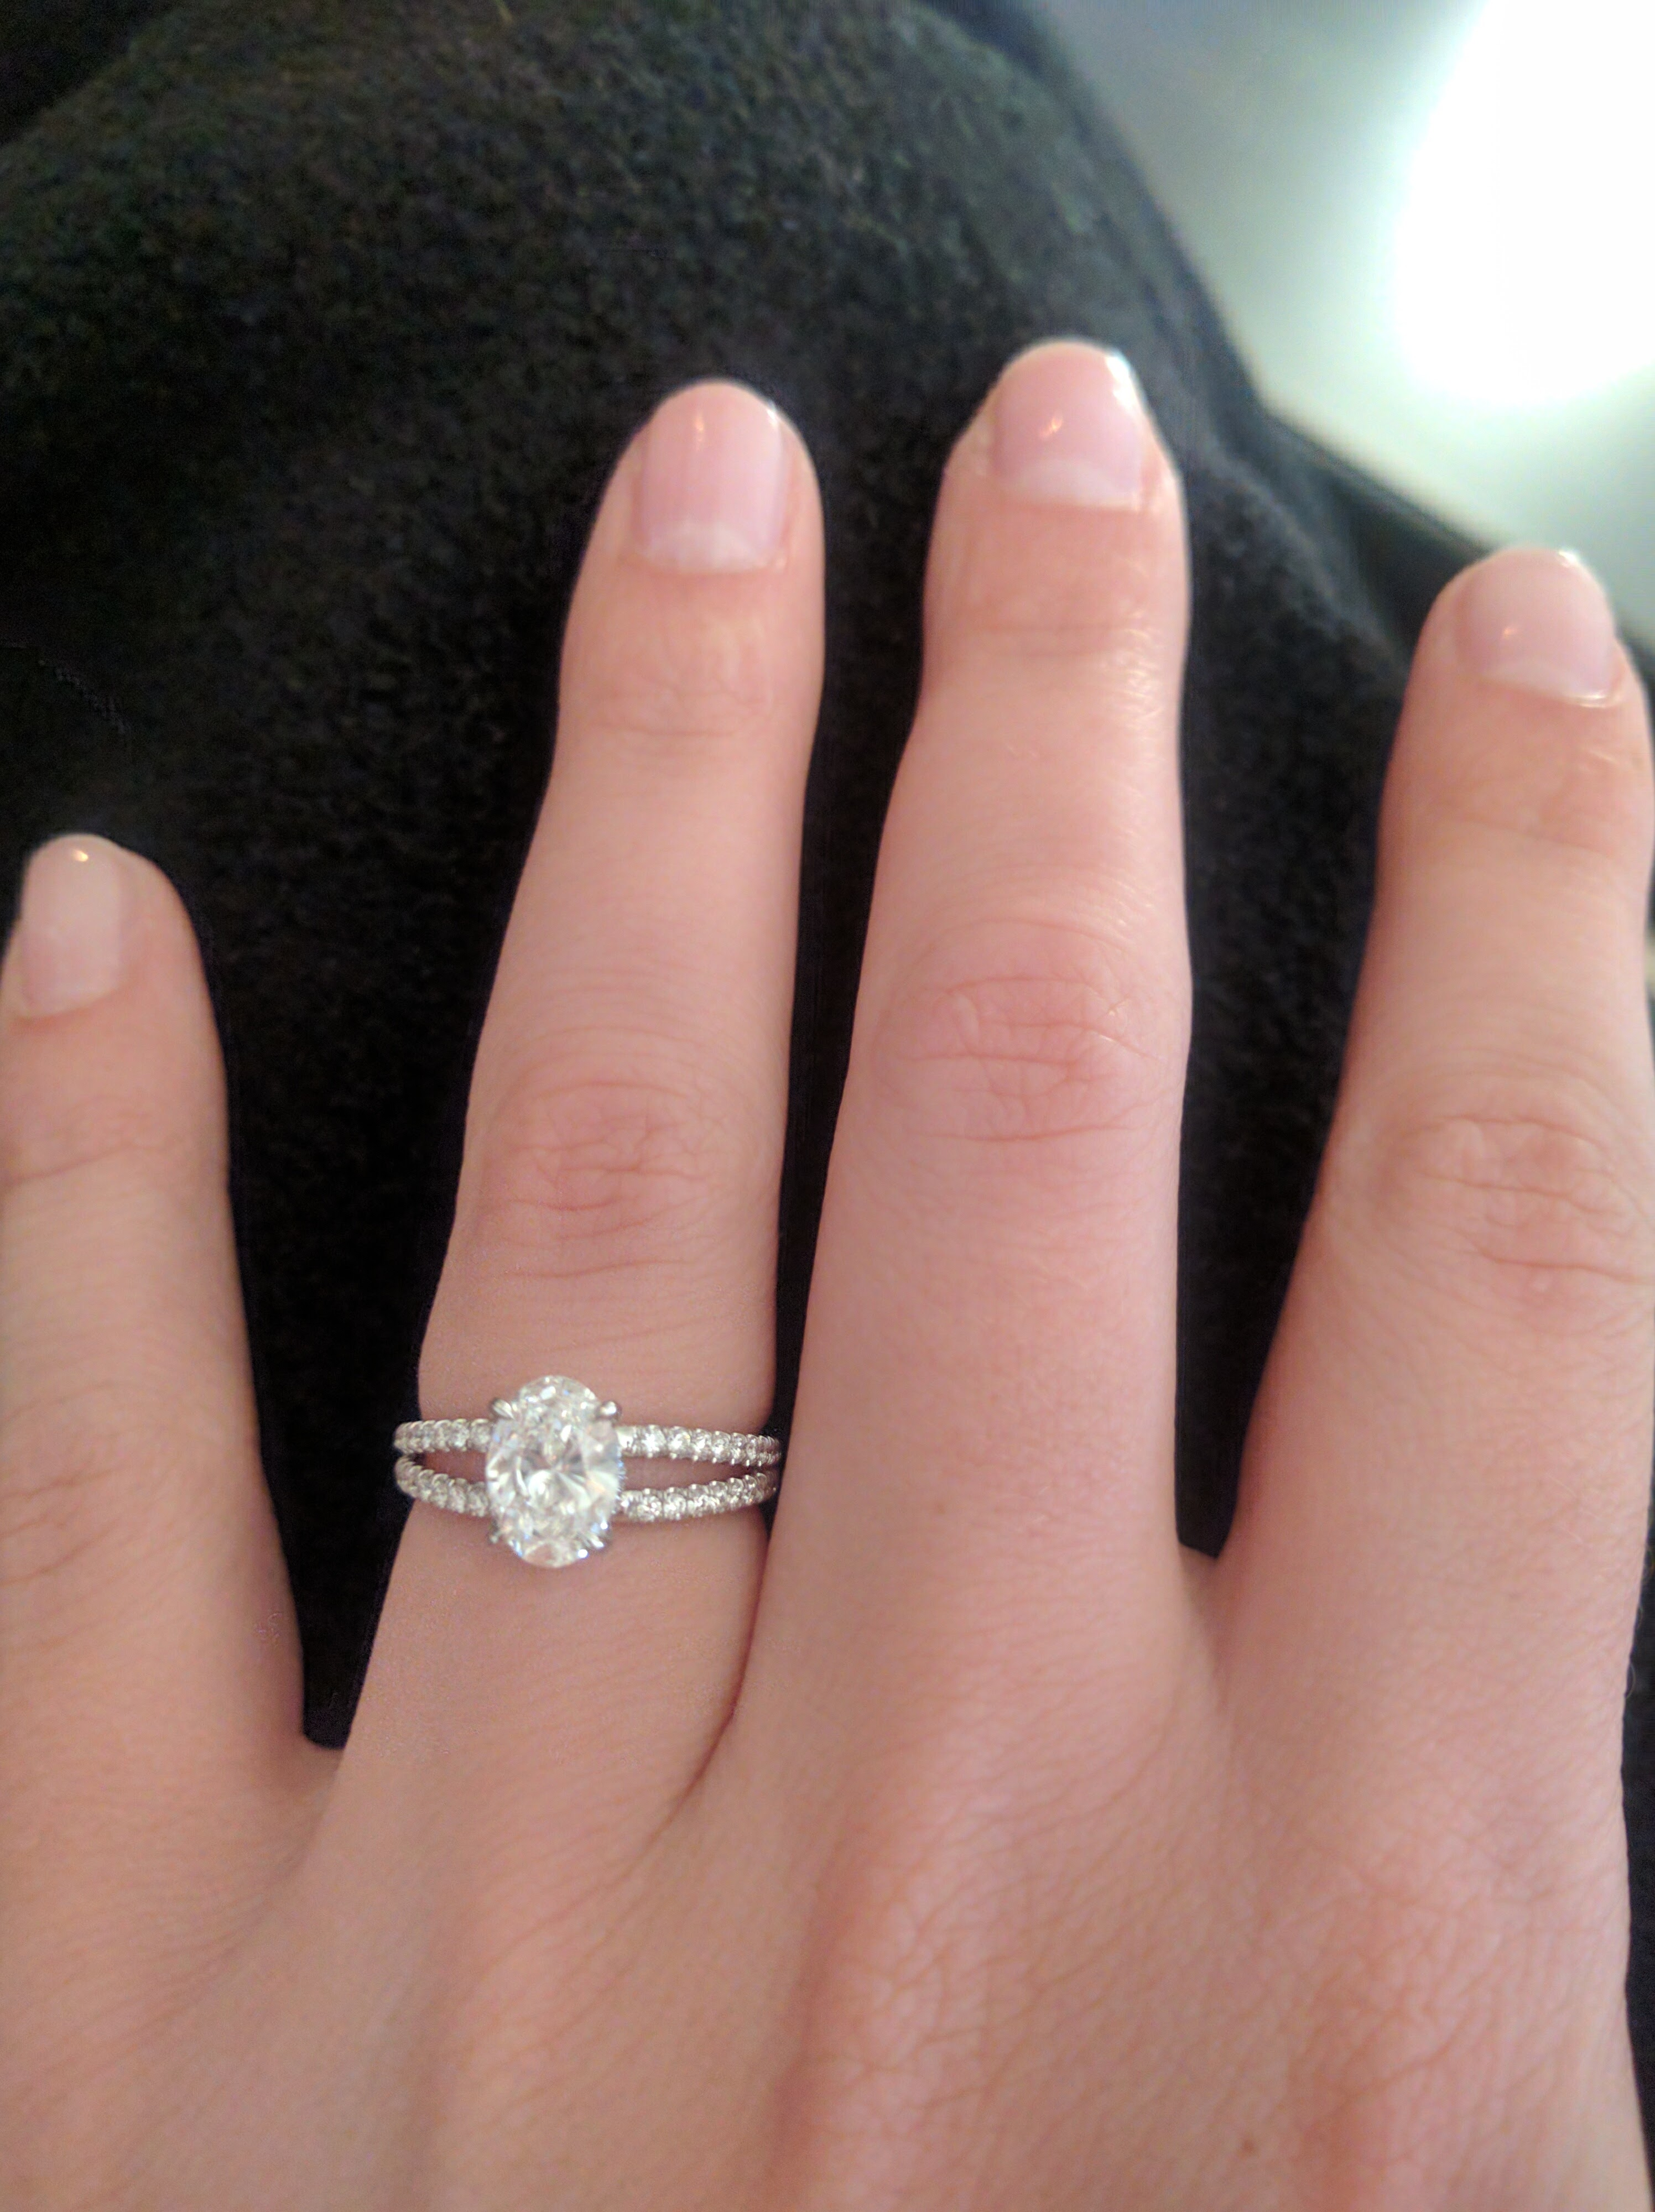 Beautiful 1ct Oval Diamond Engagement Ring In A White Gold Split Shank Setting I Do Now I Don T